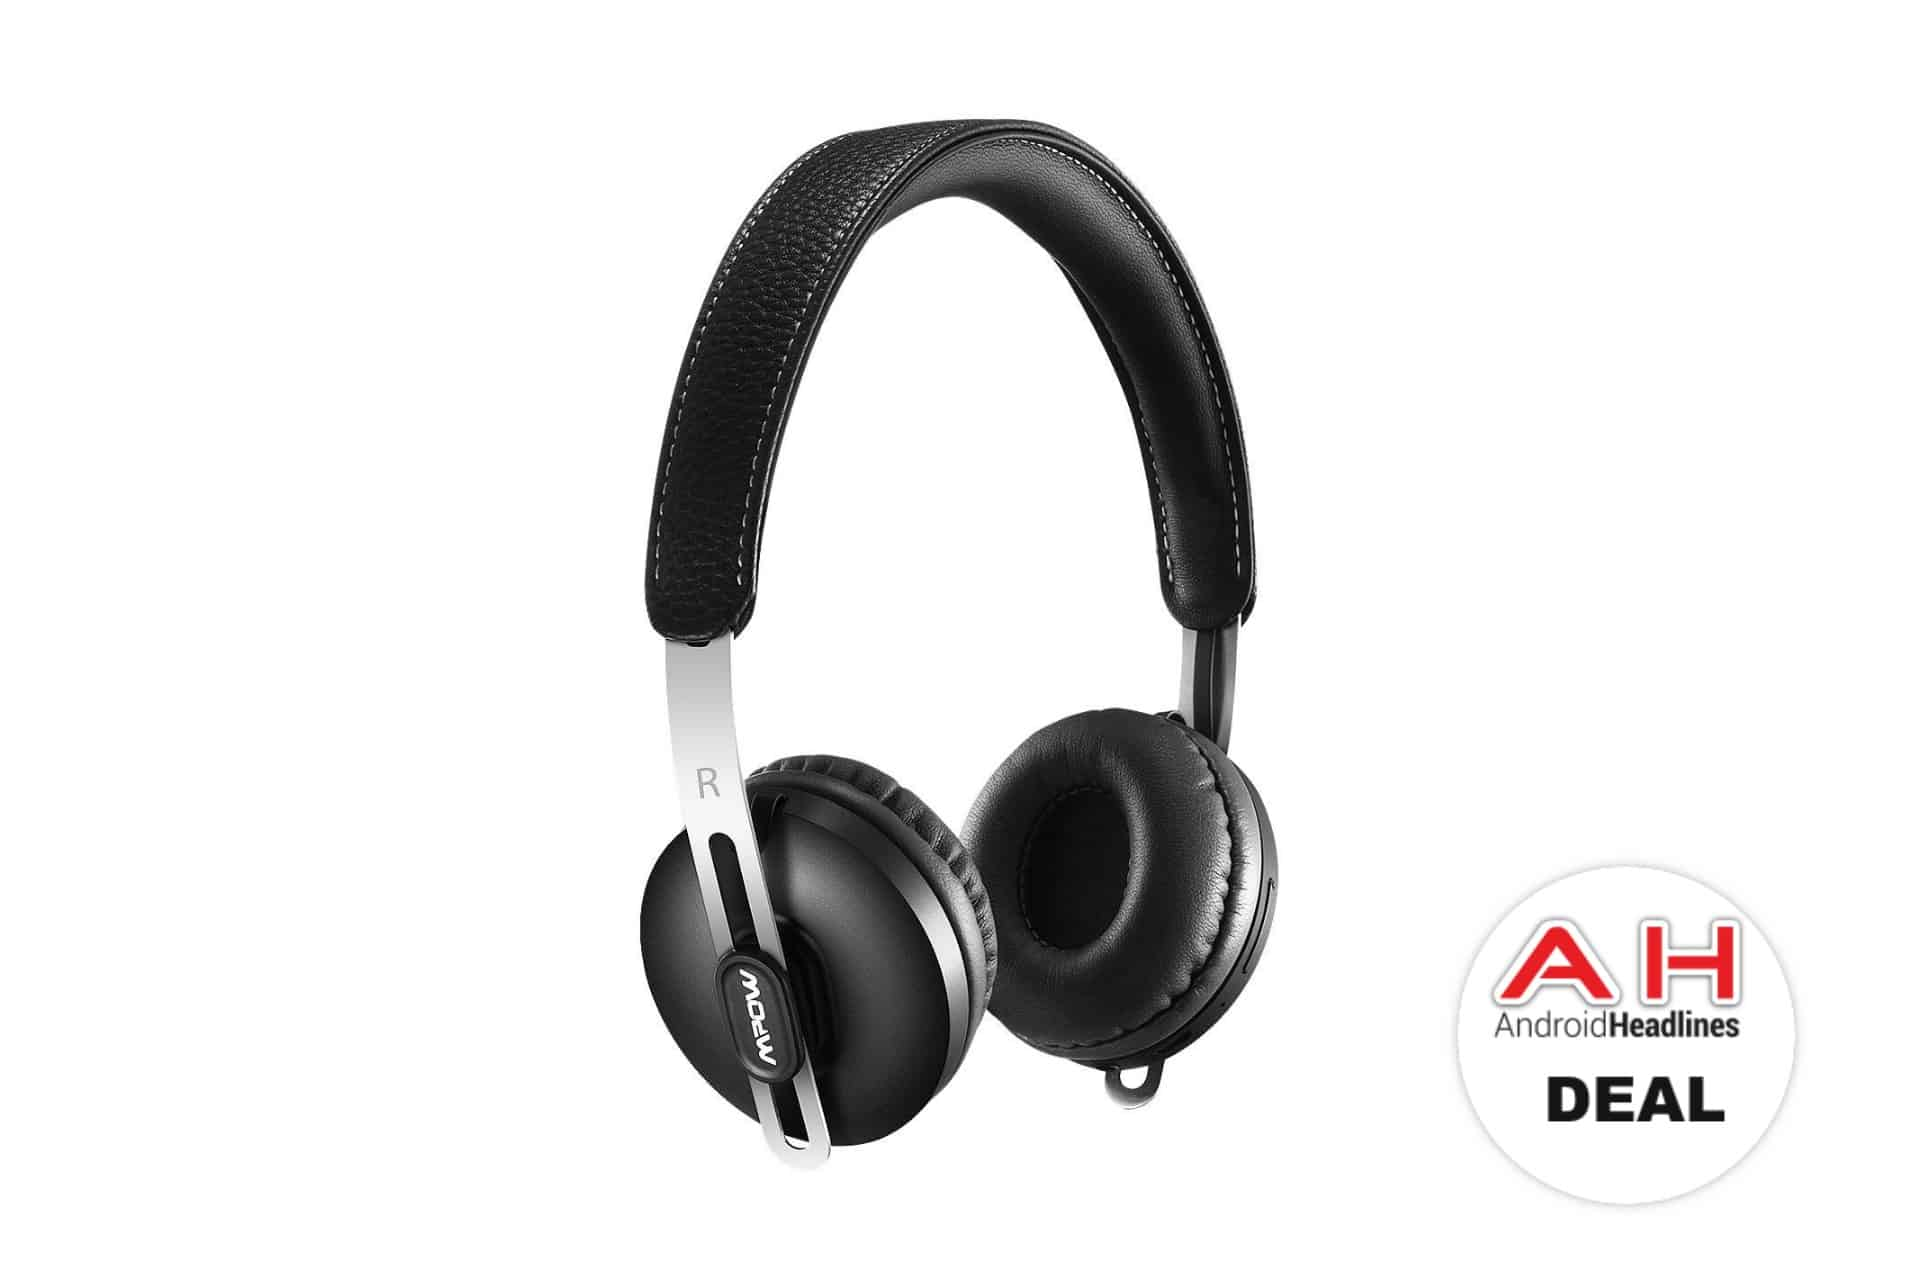 Mpow Lightweight Wireless Headphones Deal AH